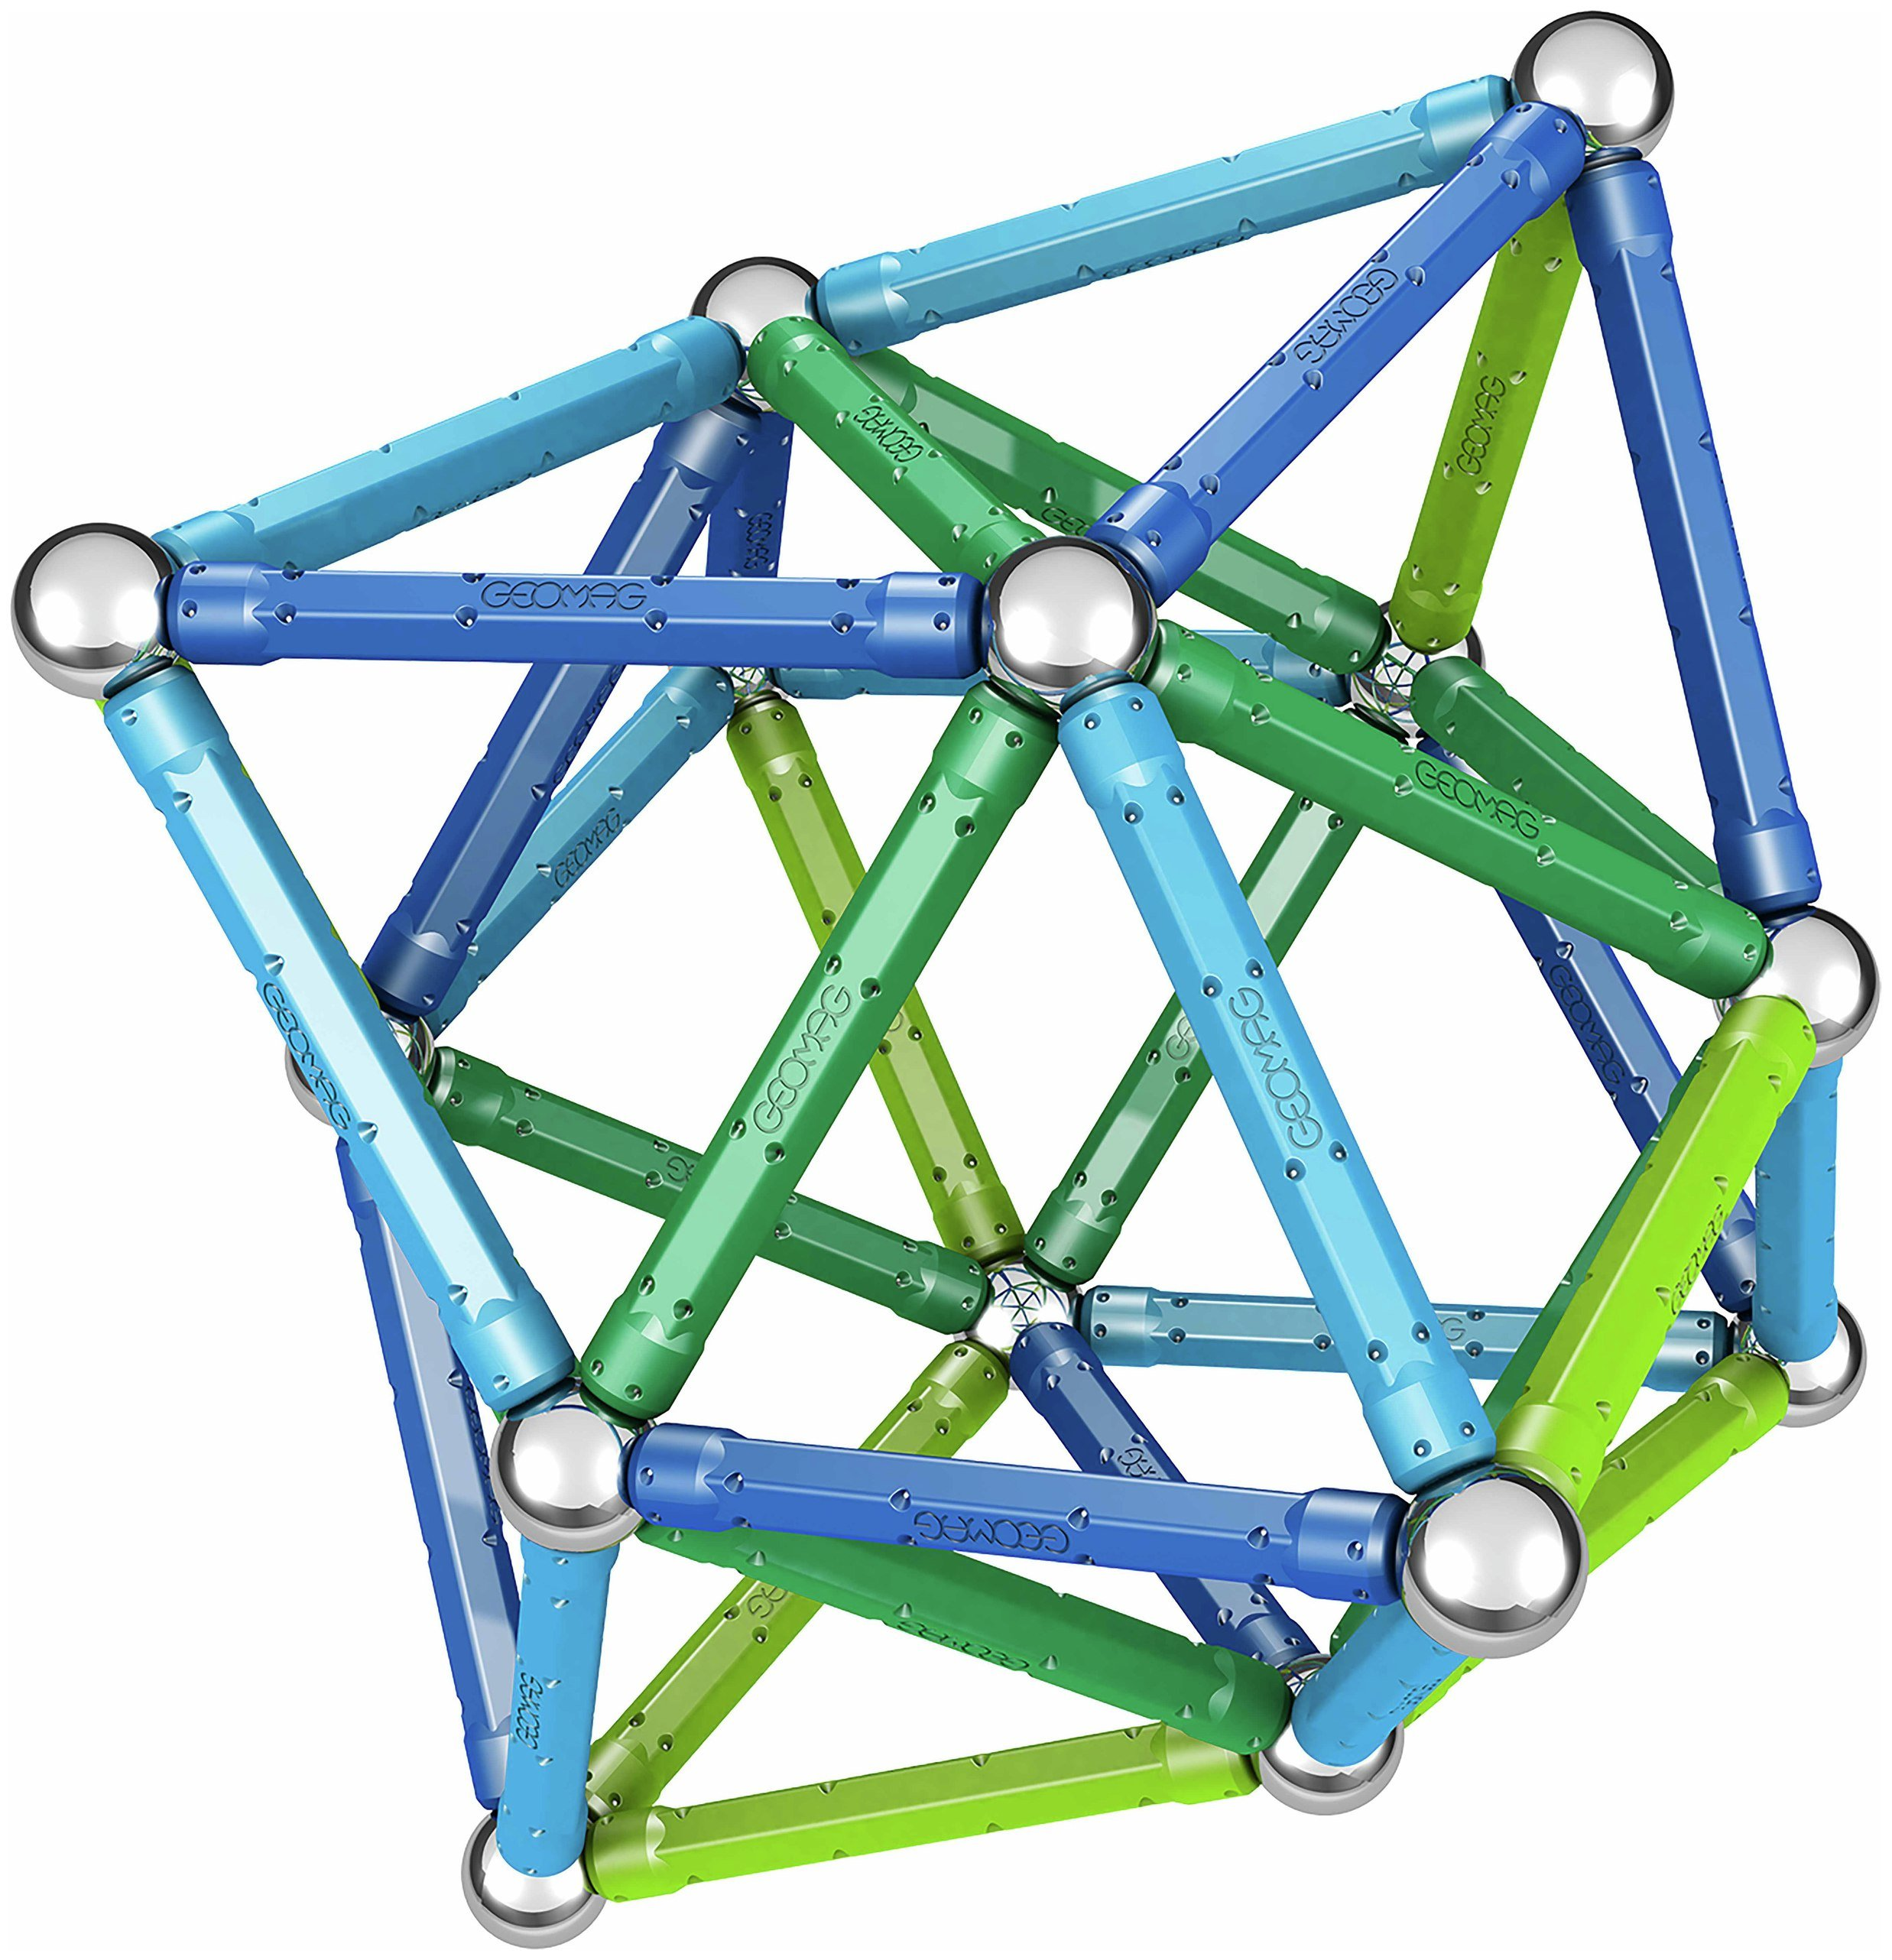 Geomag Colour 91 Magnetic Construction System. review